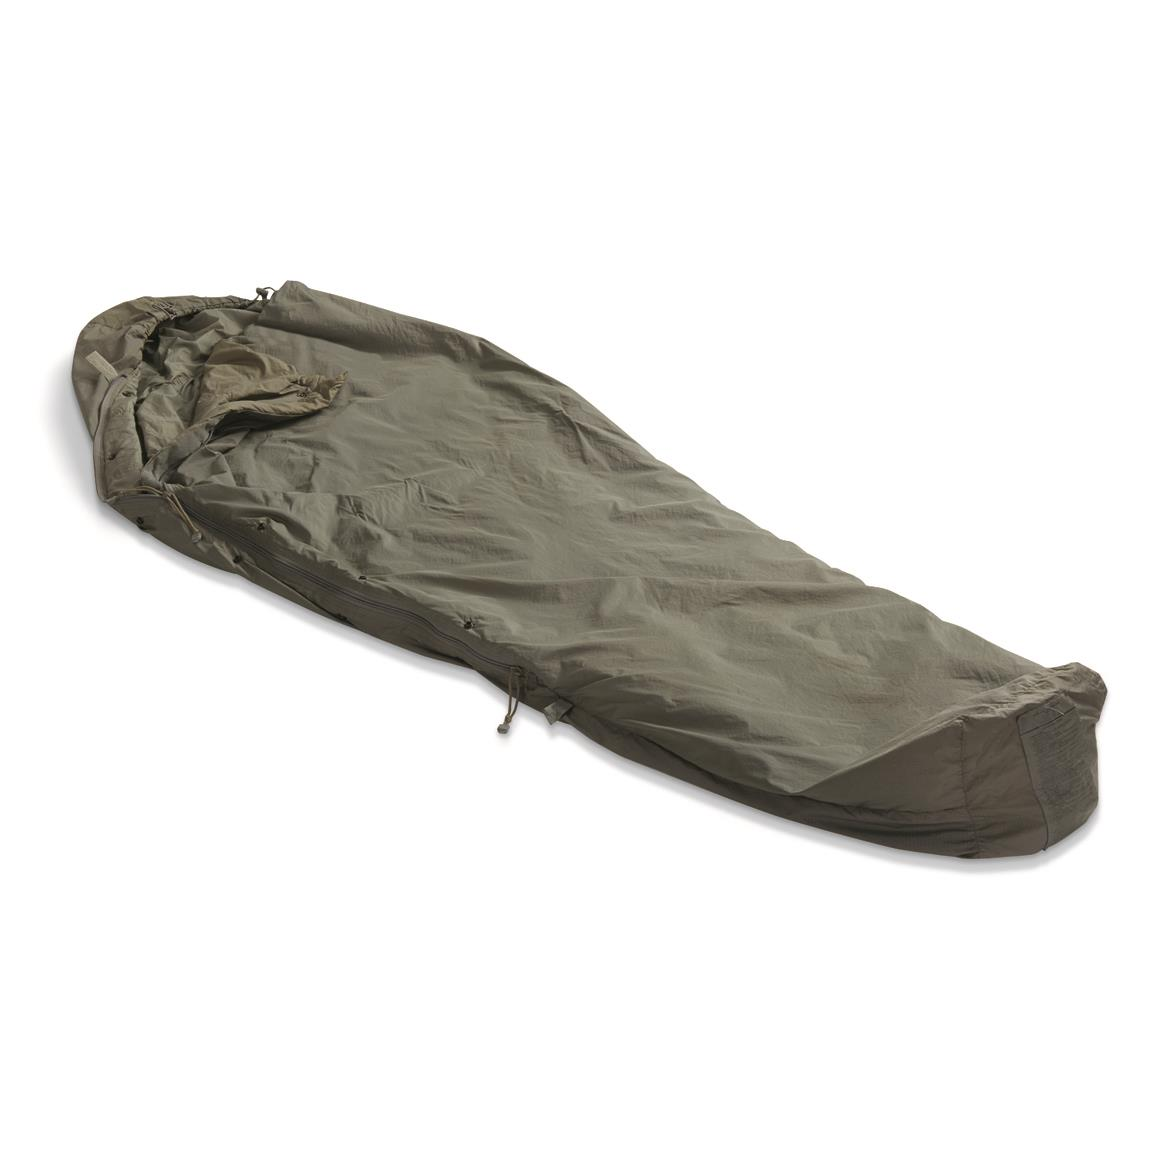 U.S. Military Surplus IMSS Patrol Sleeping Bag, Used, Foliage